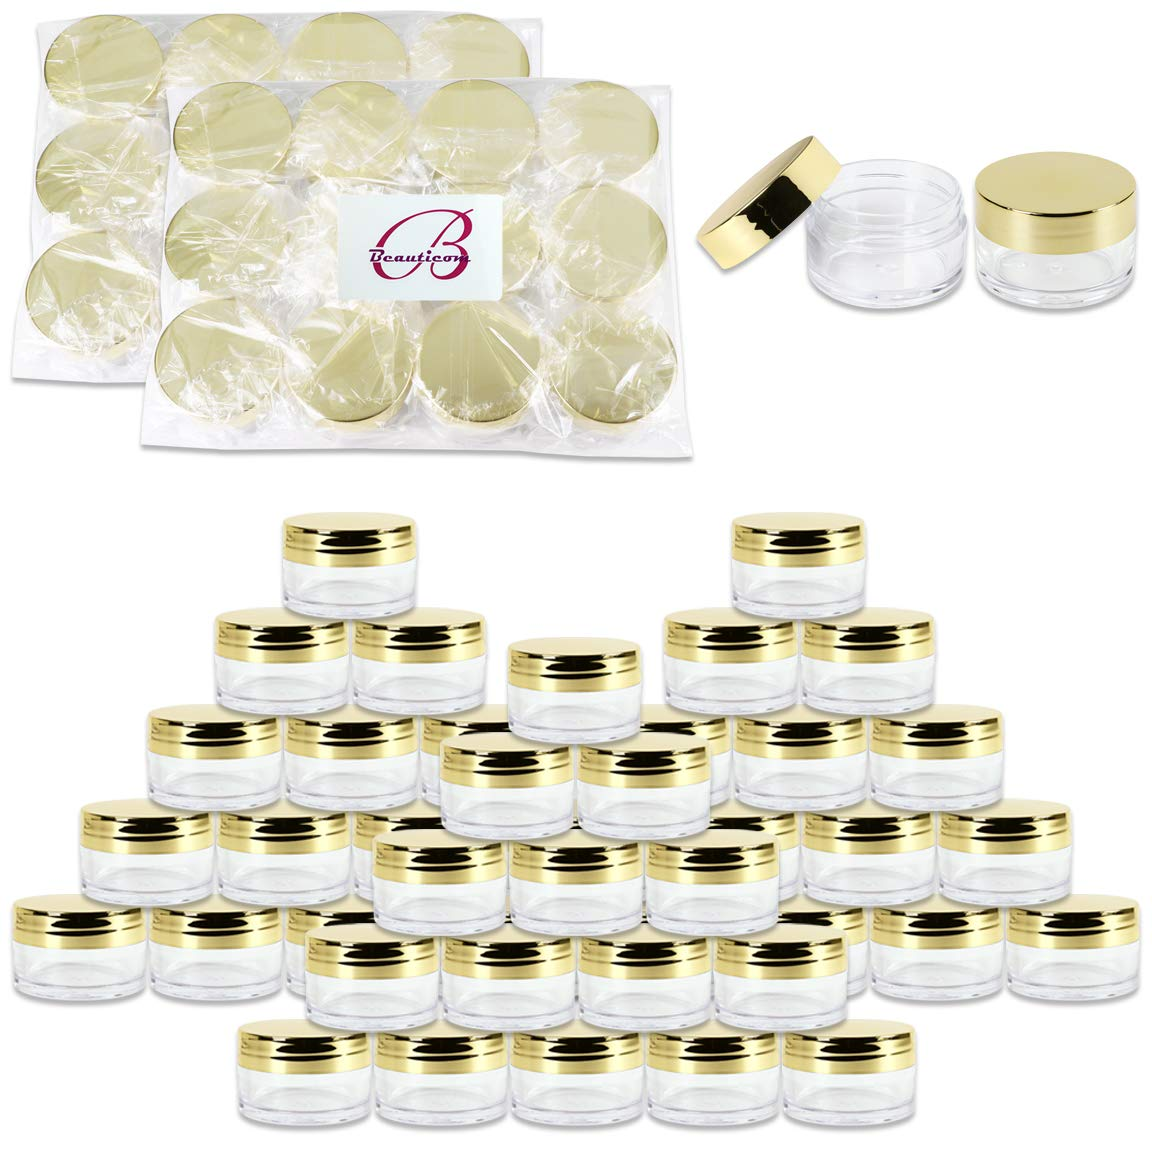 Beauticom 20g/20ml USA Acrylic Round Clear Jars with Lids for Lip Balms, Creams, Make Up, Cosmetics, Samples, Ointments (120 Pieces Jars + Lids, GOLD) by Beauticom